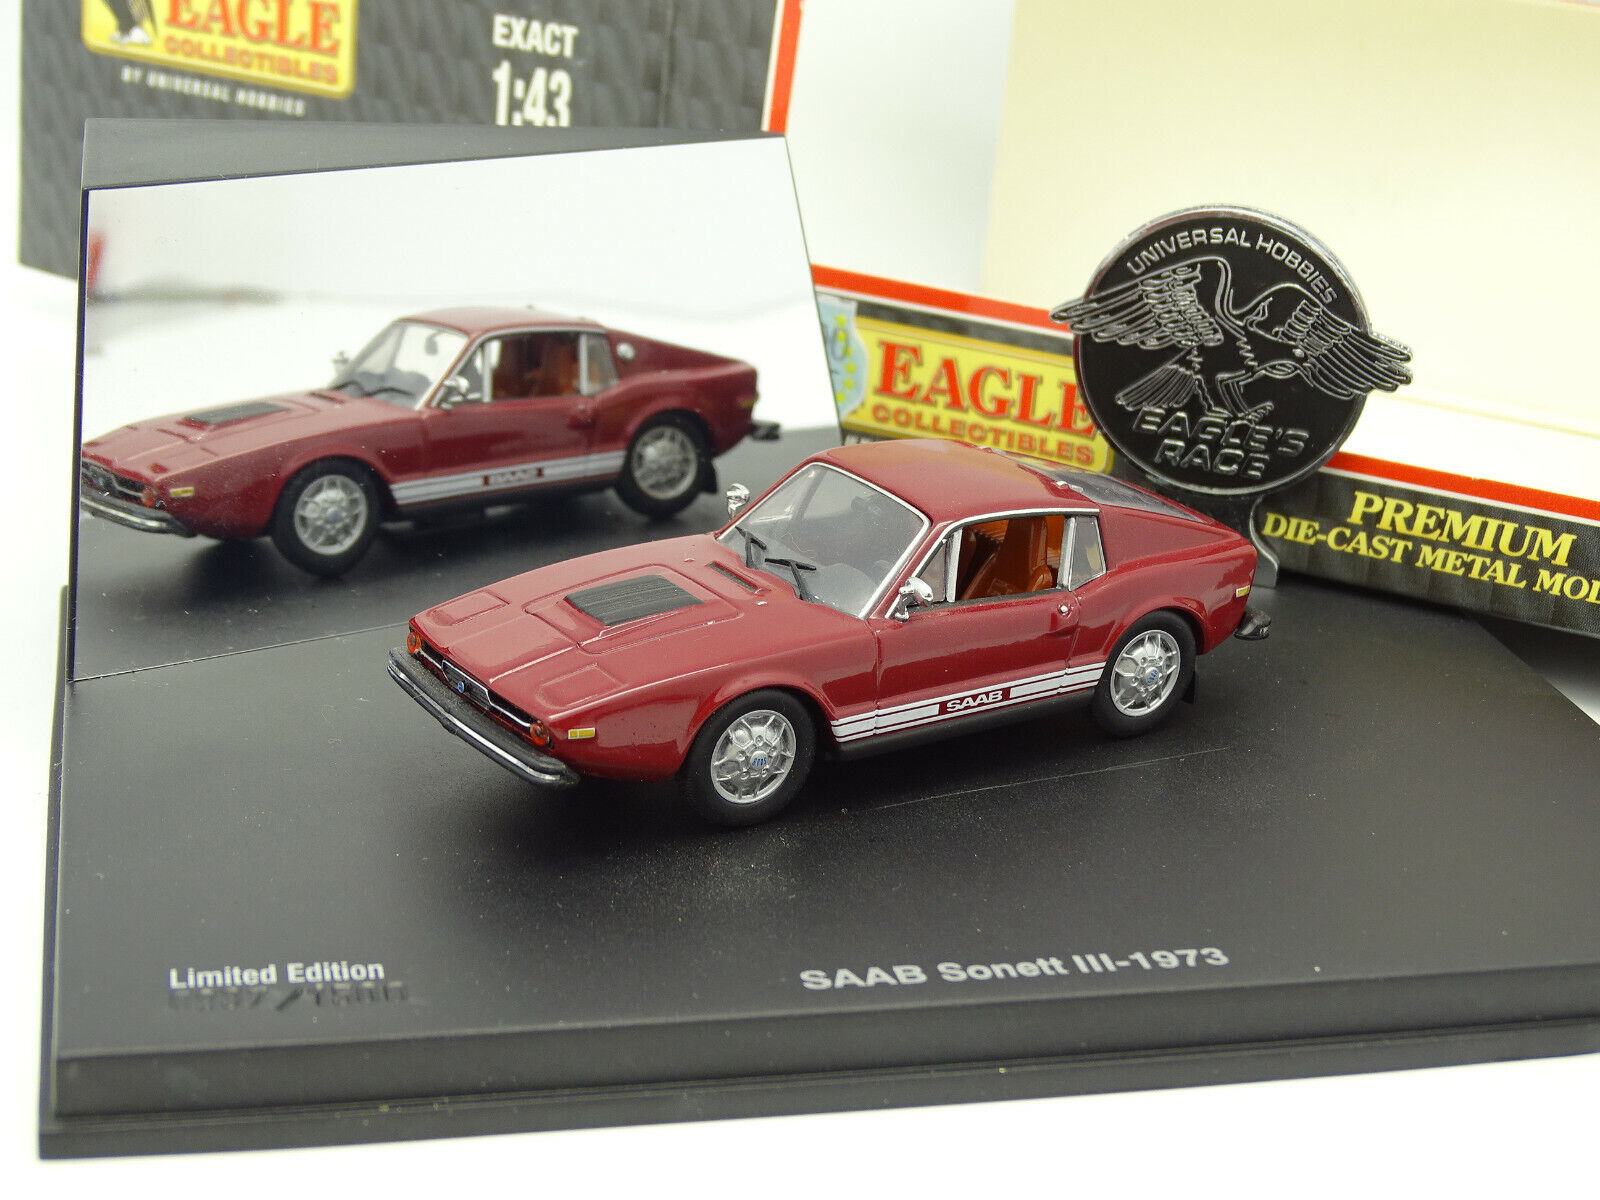 Universal Hobbies UH 1 43 - Saab Sonett III 1973 red